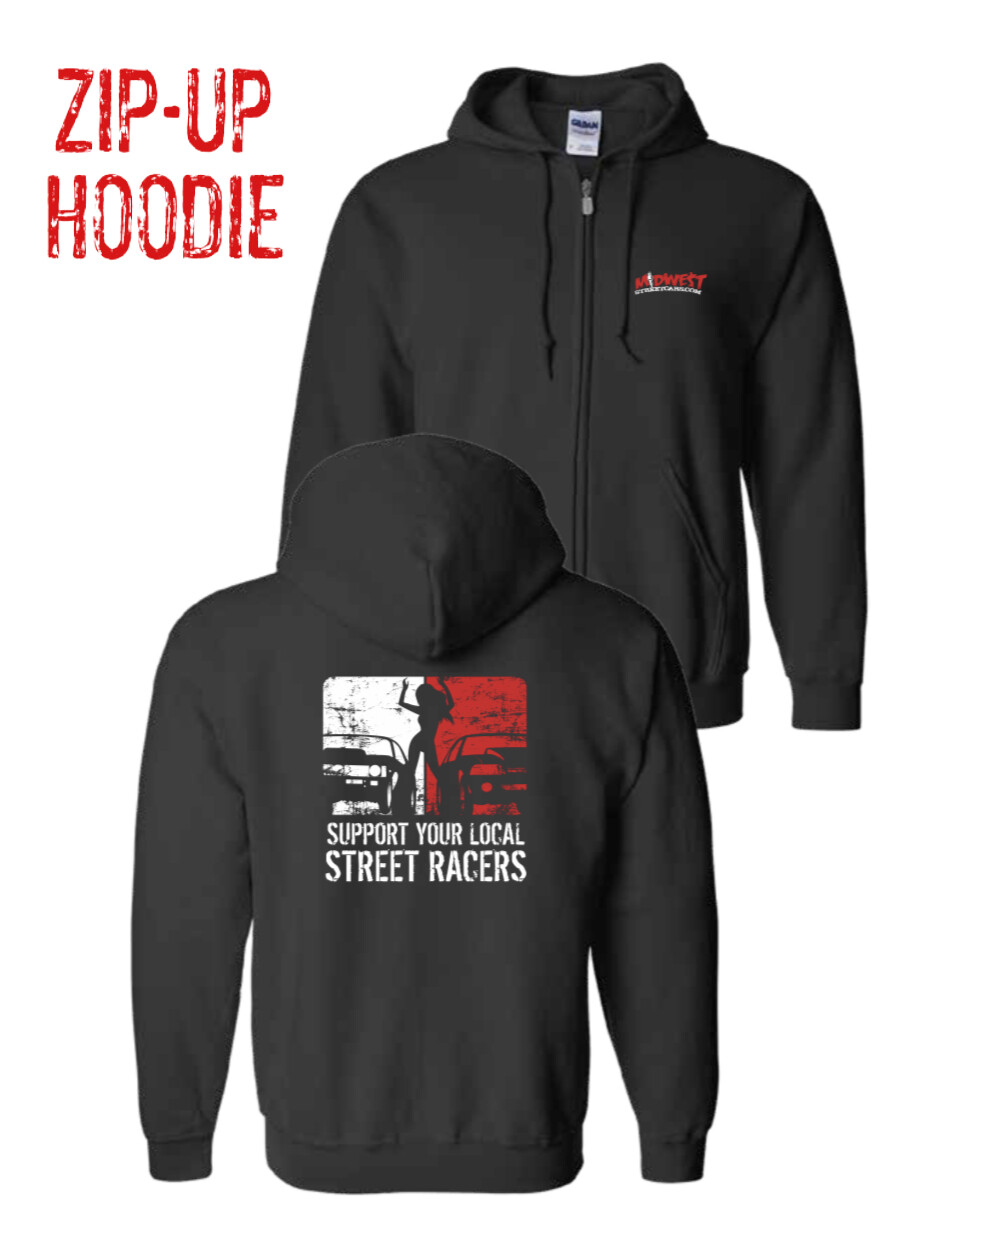 Support Your Local Street Racers Zip-Up Hoodie